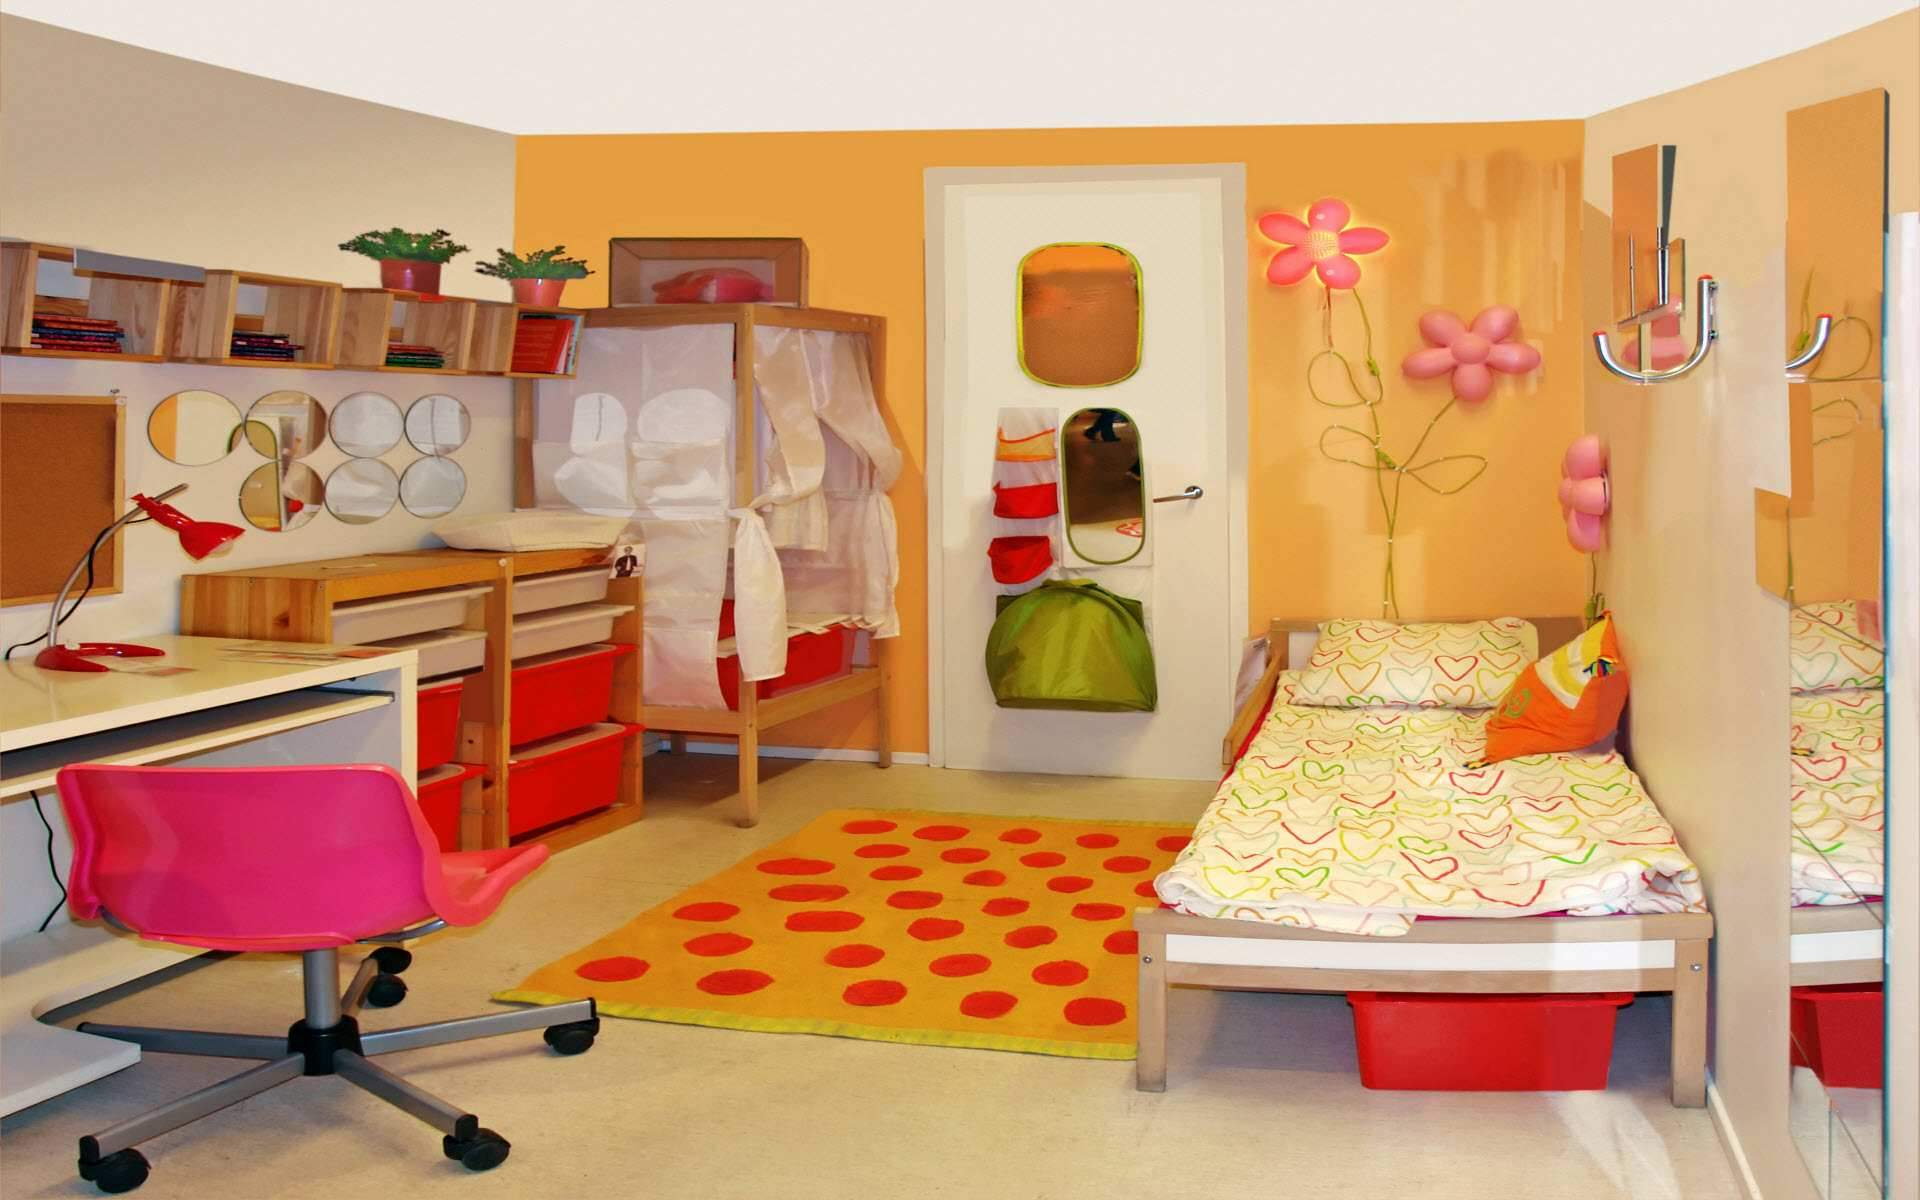 Unique small kids room decorating ideas image 012 small for Room decor for kids